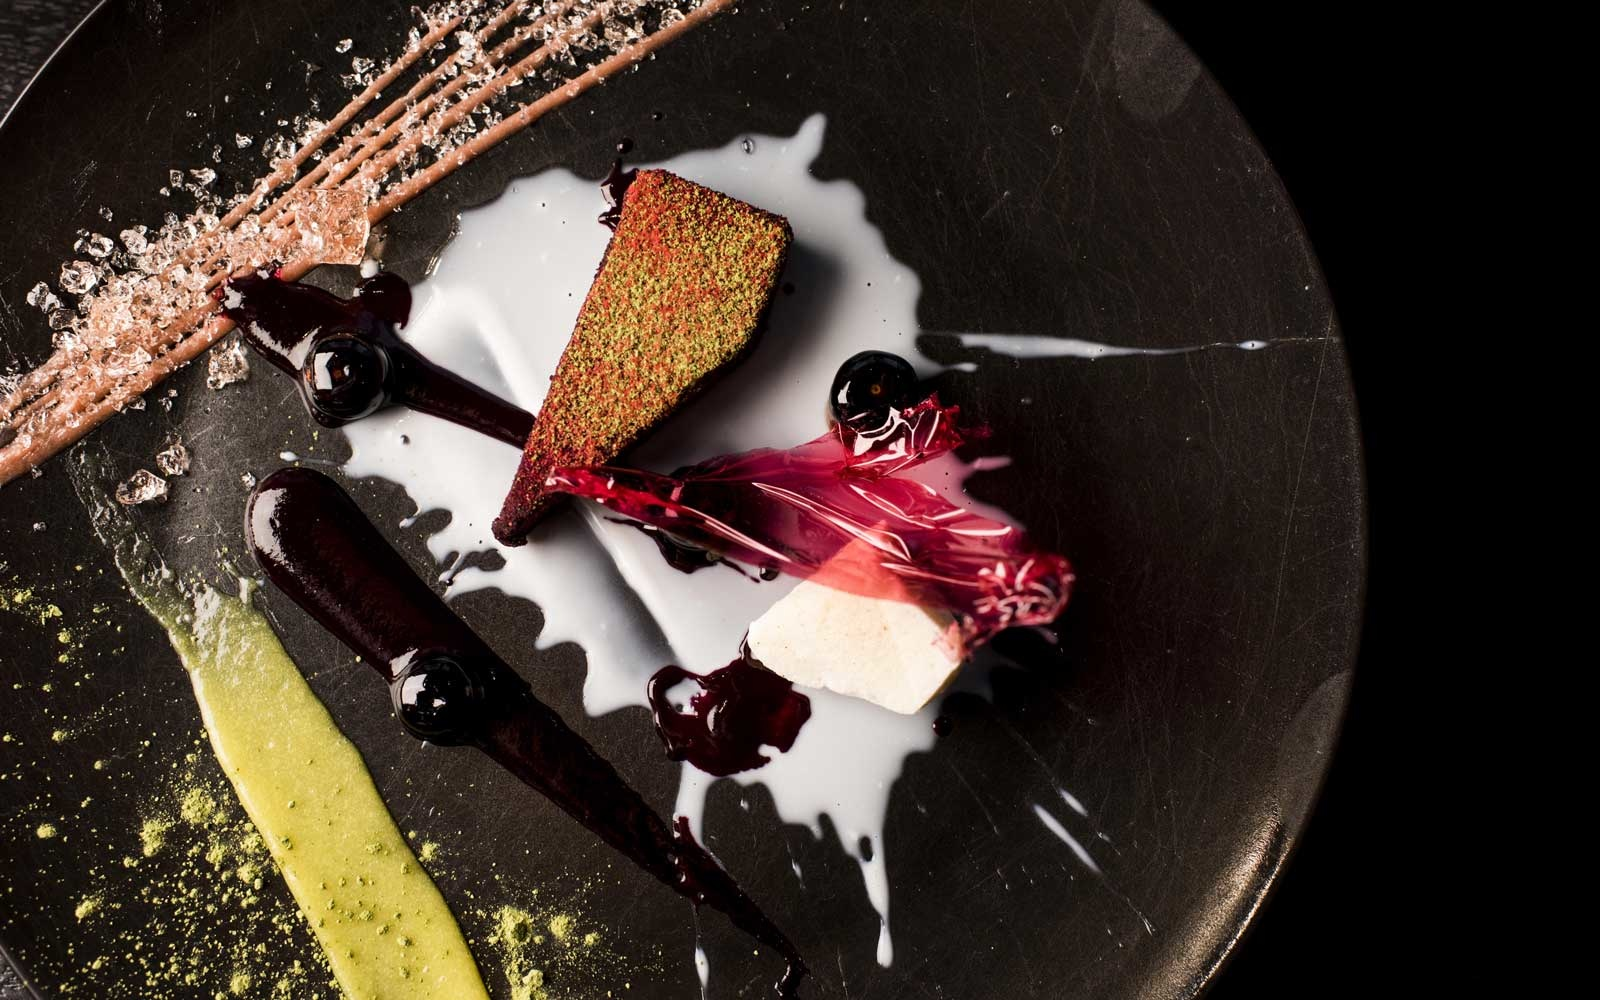 Matcha, Berries, Hibiscus Cheesecake at the Alinea Restaurant in Chicago, Illinois